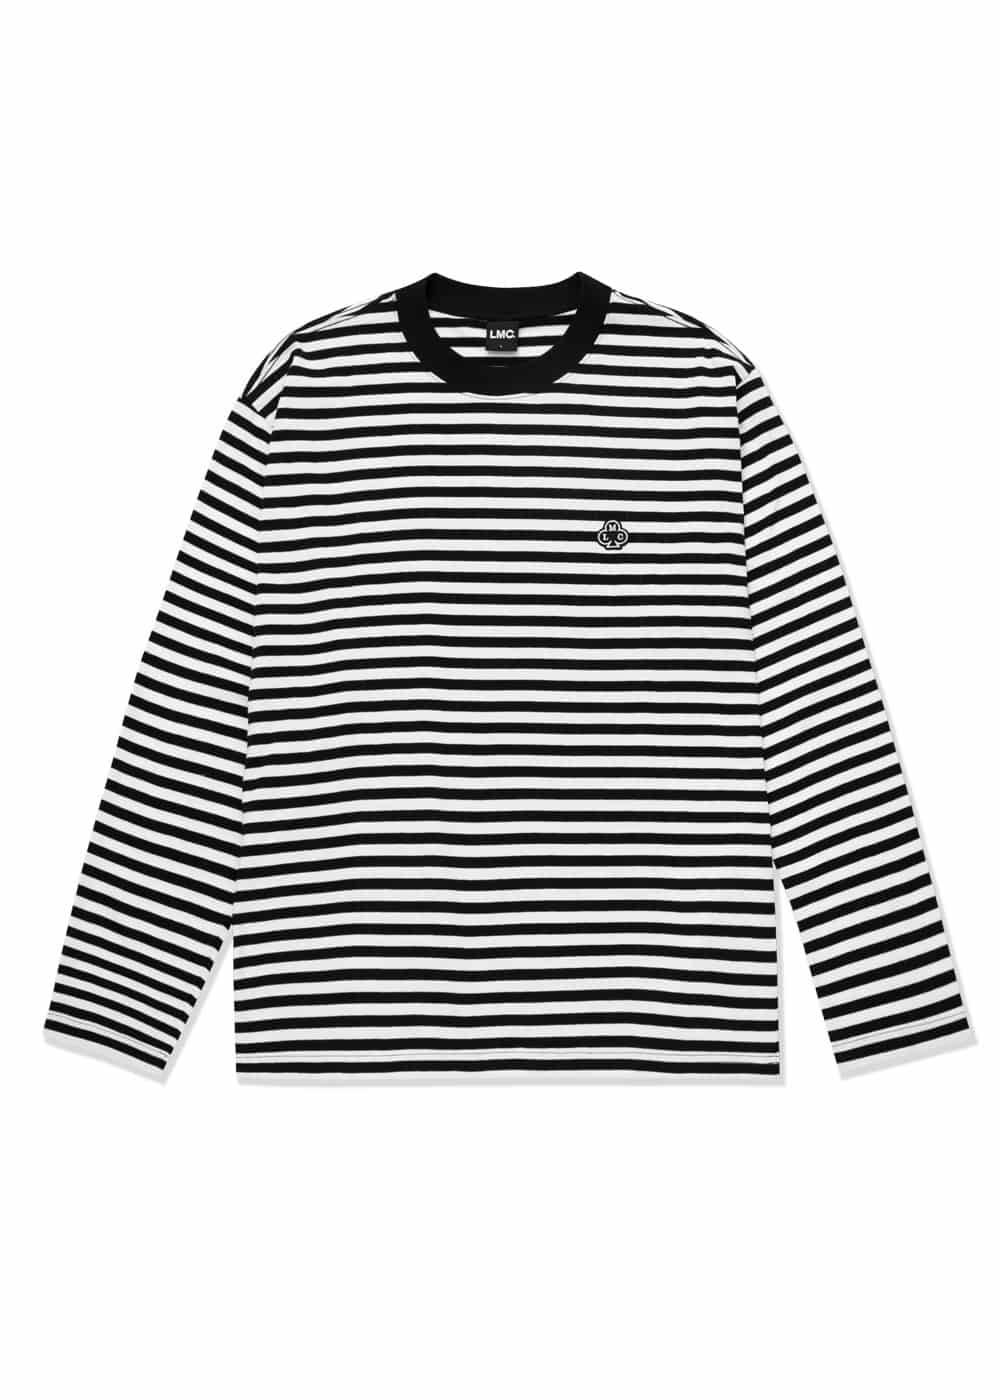 LMC CLUB STRIPE LONG SLV TEE black